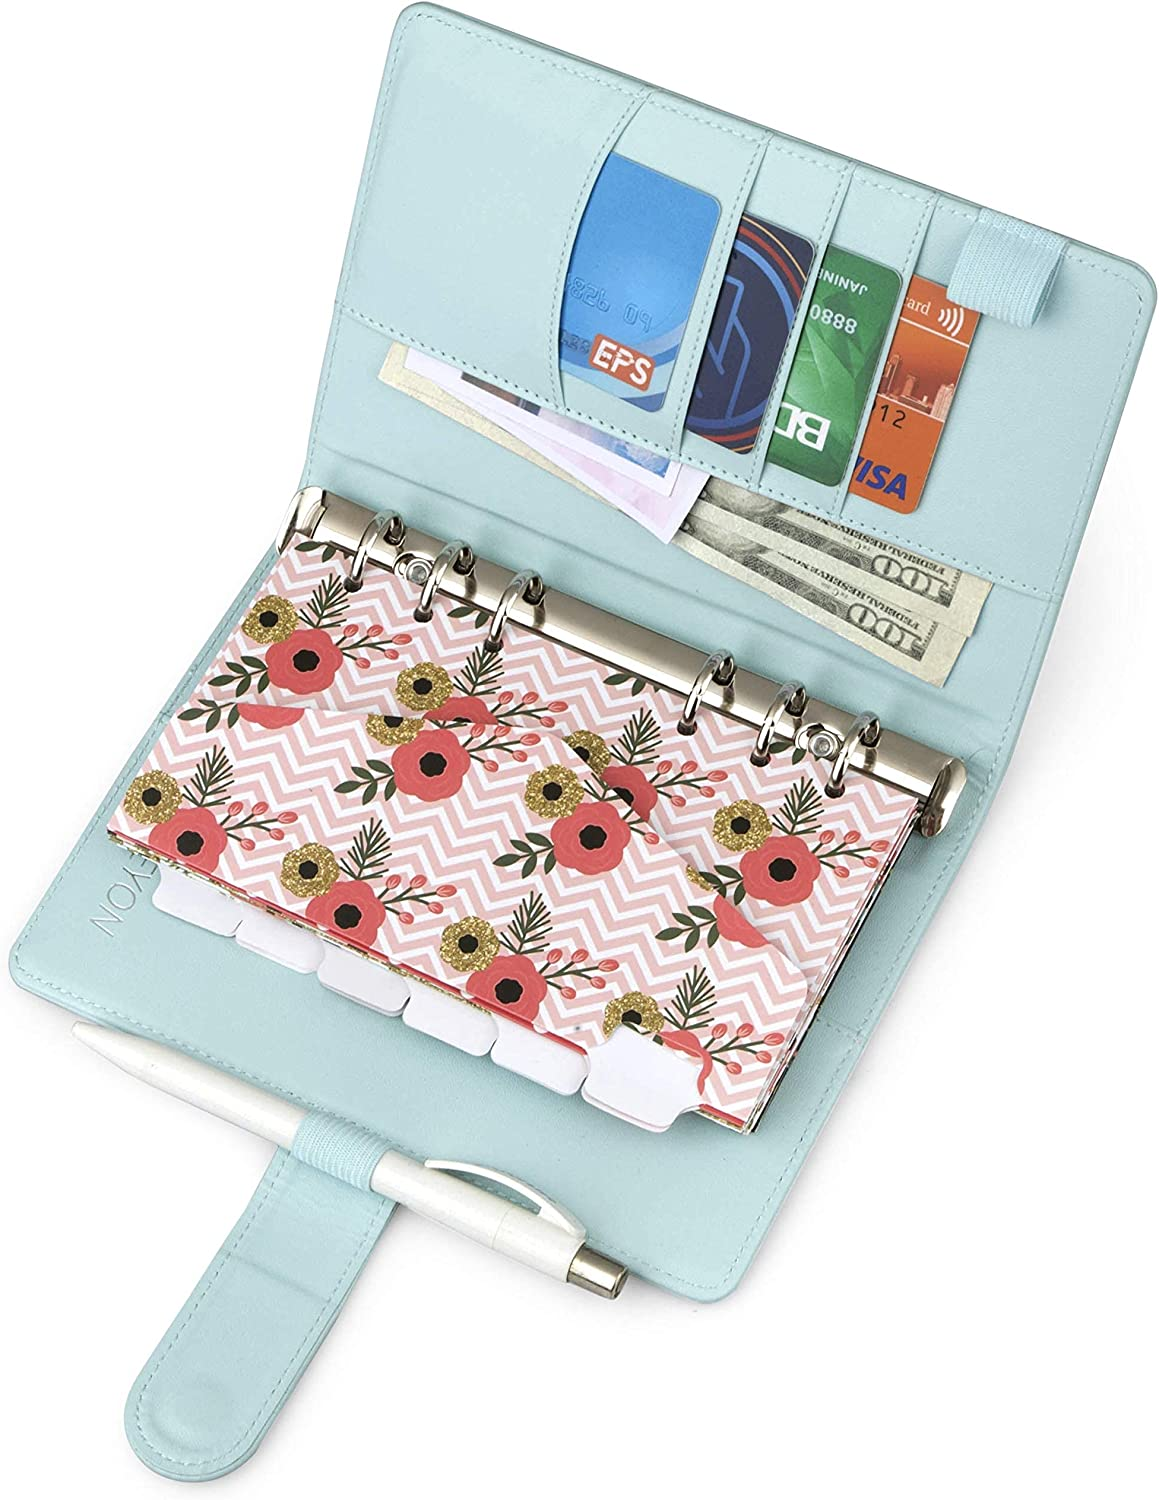 Blue A6 Binder and Budget Envelopes, Budget Binder with Cash Envelopes for Budgeting, Mini Binder Cash Envelope Wallet, Small Binder Budget Planner, Cash Envelope Binder with Money Envelopes for Cash : Office Products